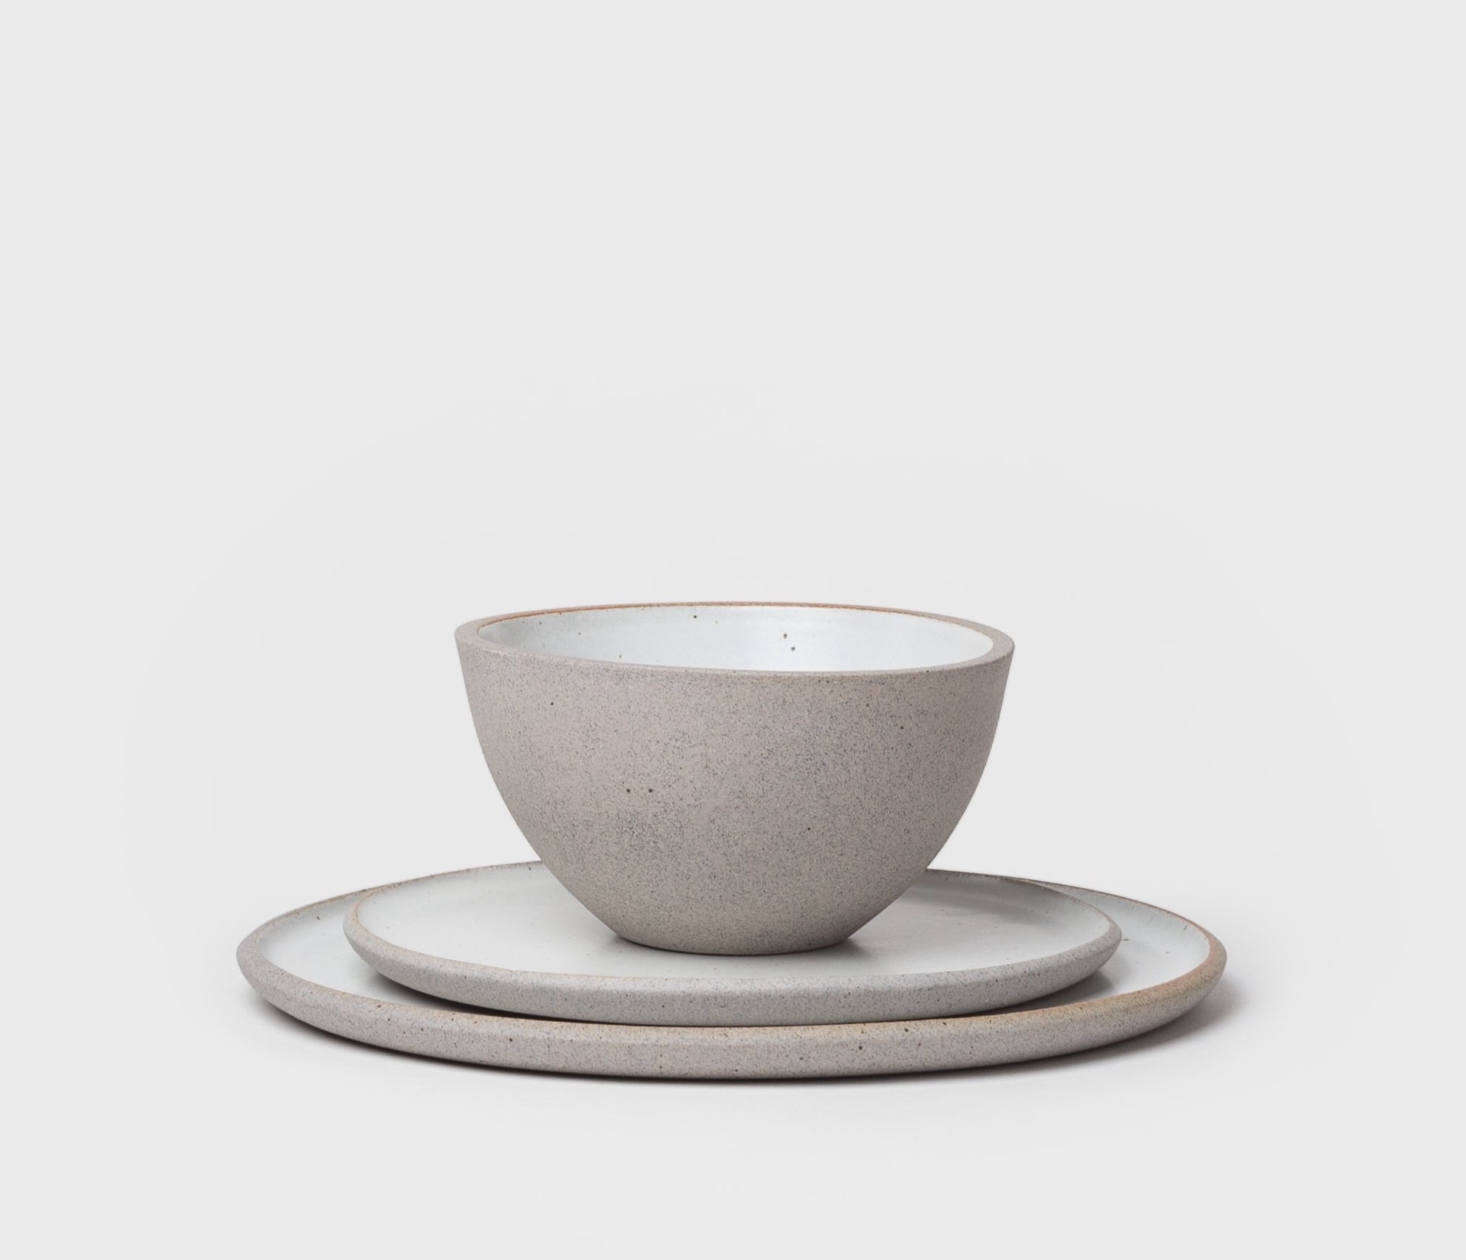 """Founded by Belgian-born artist Delphine Lippens, Humble Ceramicsproduces """"artisan pottery made with mindfulness in South Los Angeles, one small batch at a time."""" TheStillness Dinner Collection shown above is $105 from Shoppe Amber. (Also see our post Small-Batch, Big-Demand: Humble Ceramics of LA.)"""